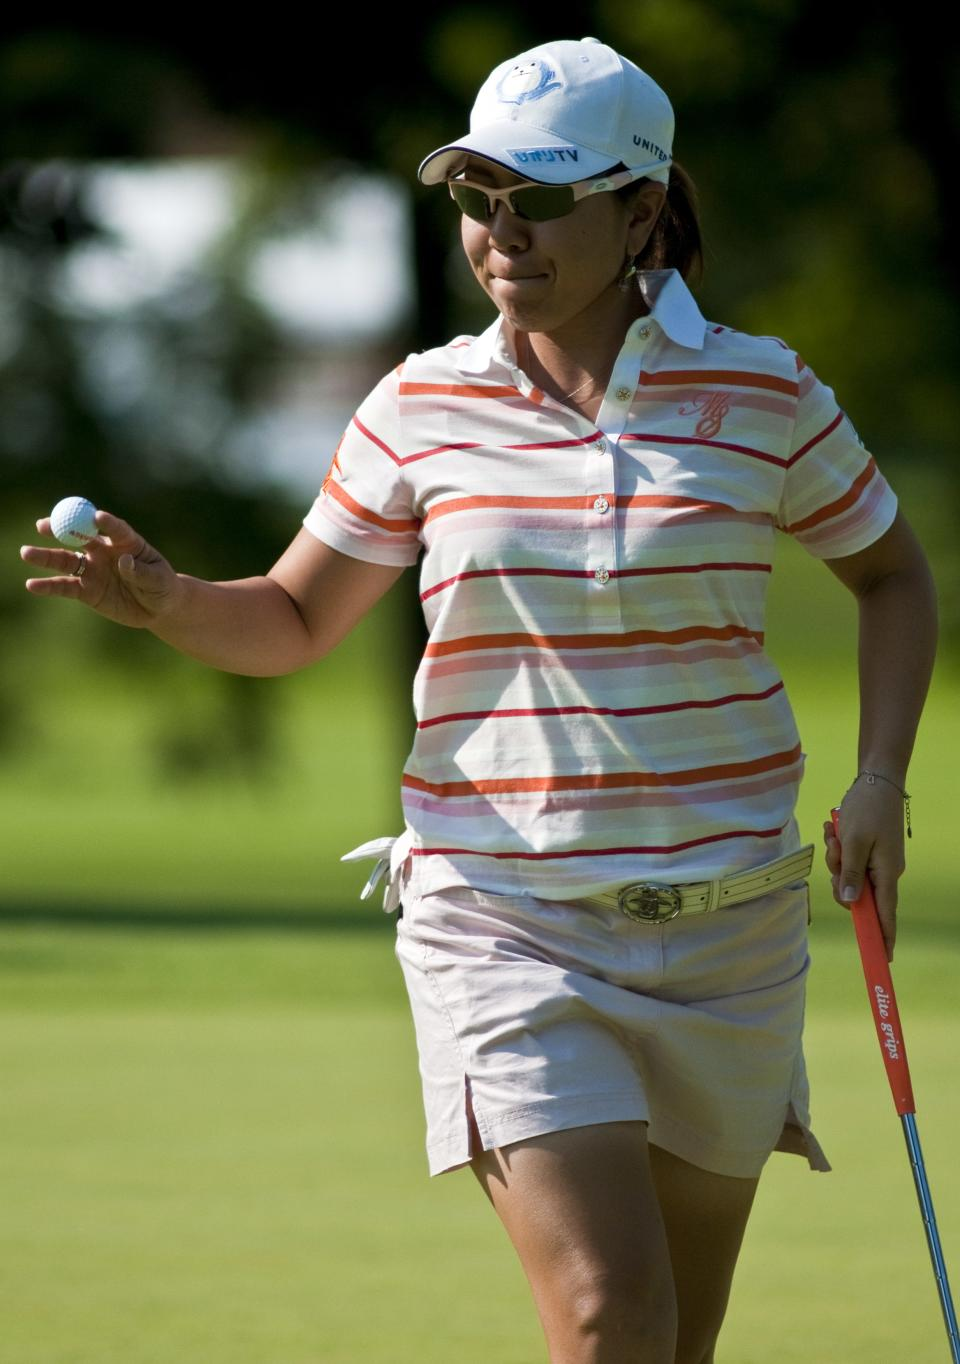 Mika Miyazato of Japan, gestures toward the crowd after sinking a putt for par on the ninth green during the second round of the LPGA NW Arkansas Championship golf tournament in Rogers, Ark., Saturday, June 30, 2012. (AP Photo/April L. Brown)